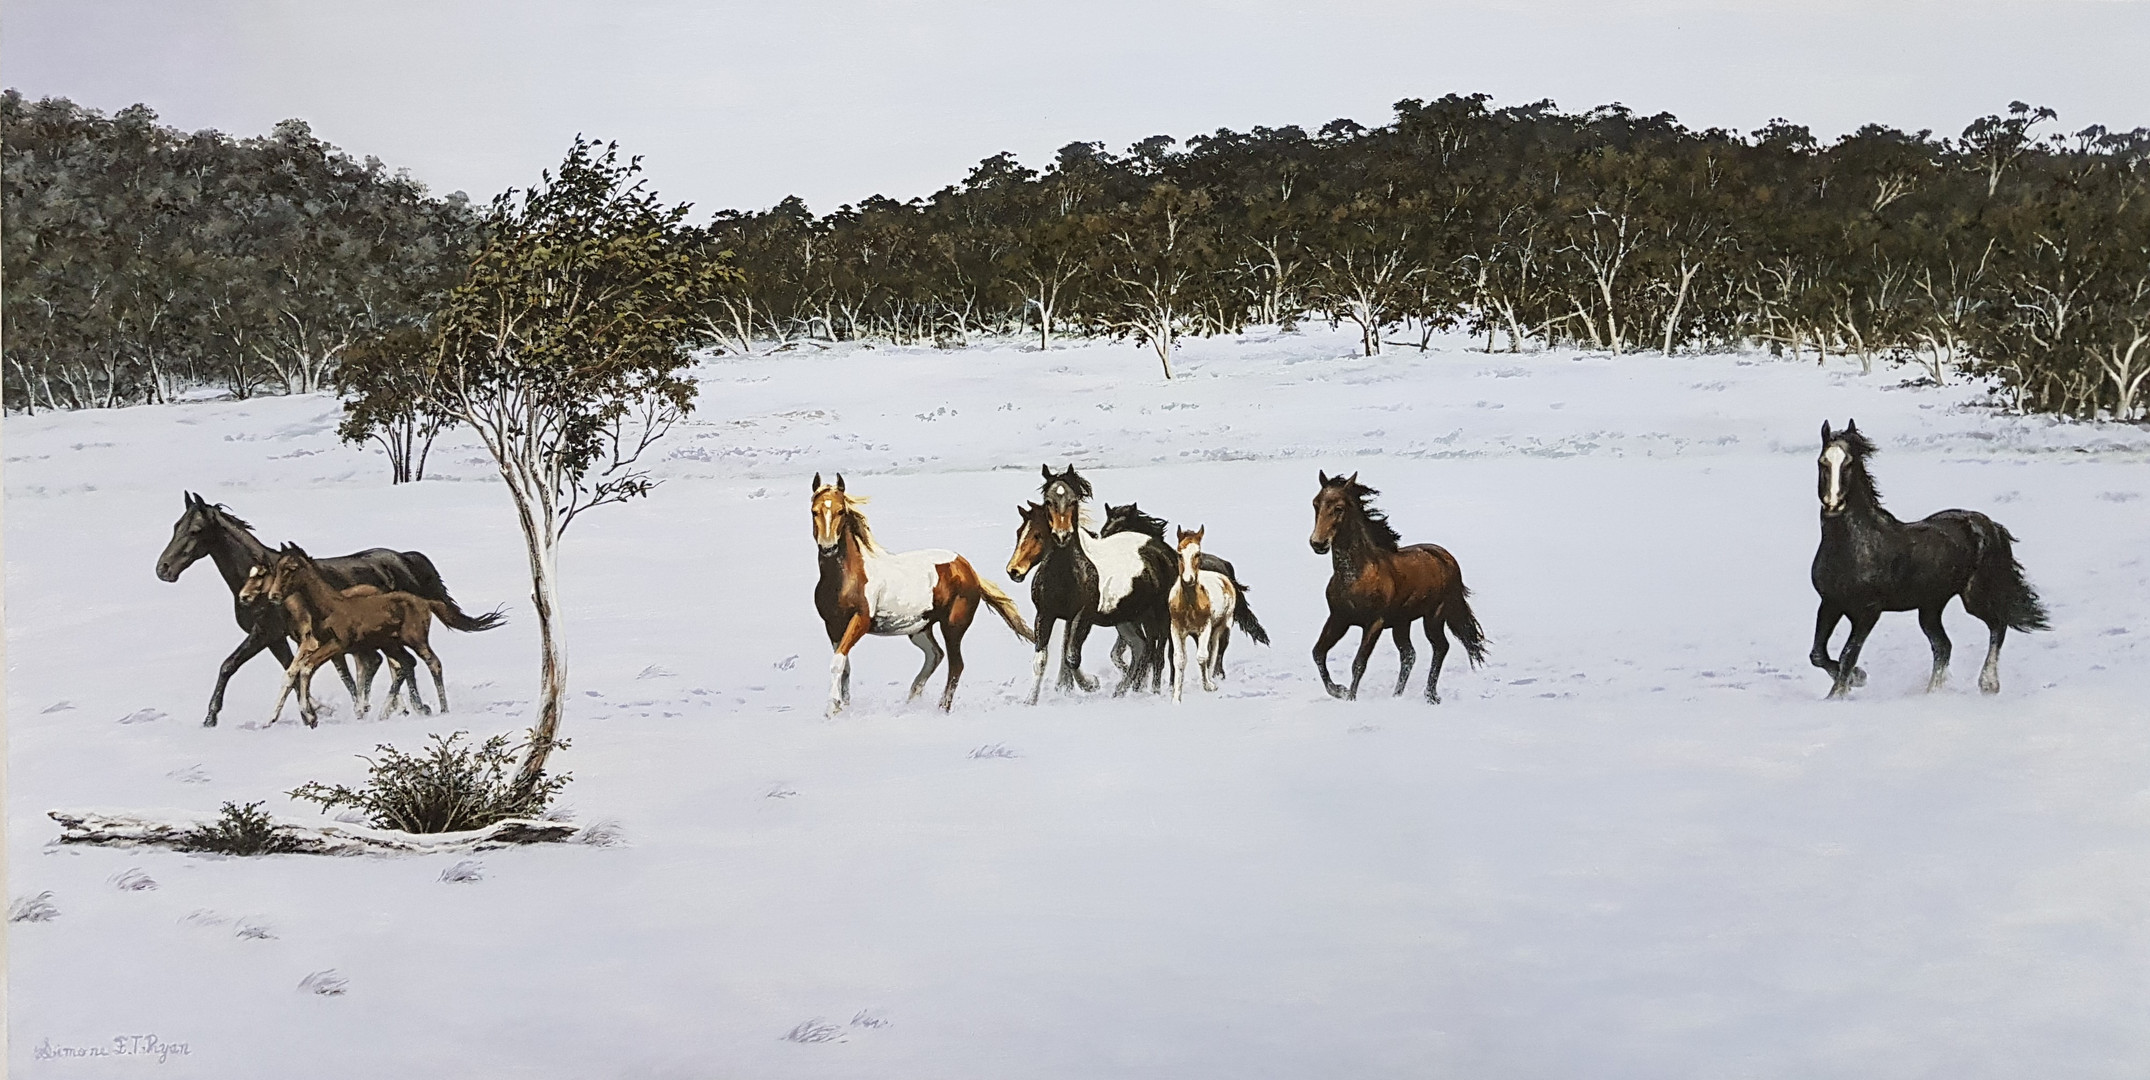 Brumbies of the Barrington Tops